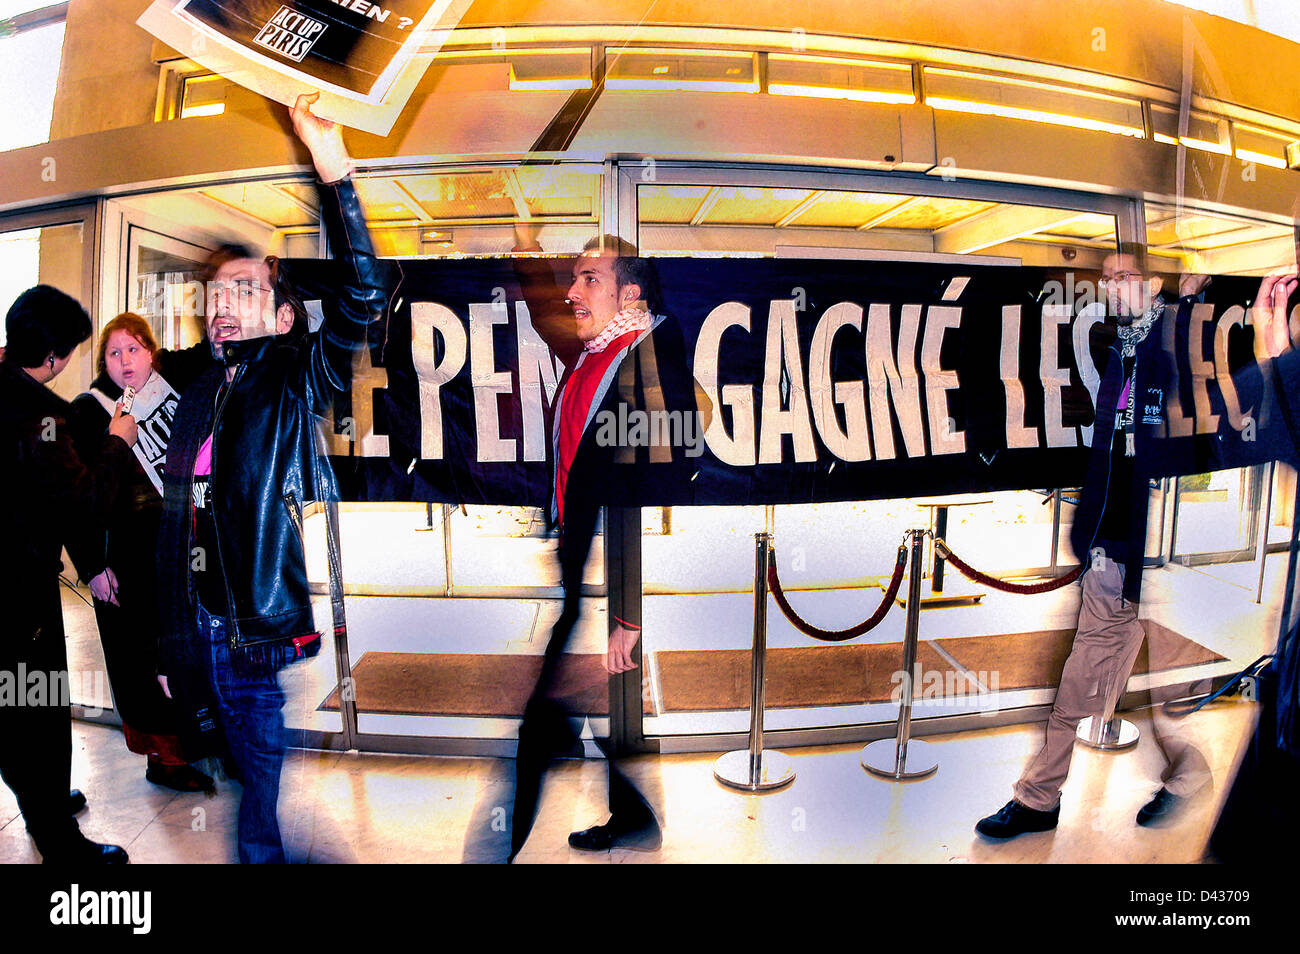 Paris, France,  AIDS Activists Protesting ACTION - ZAP OF THE N.G.O. FIGHTING AIDS, ACT UP PARIS, WHO OCCUPIED THE - Stock Image